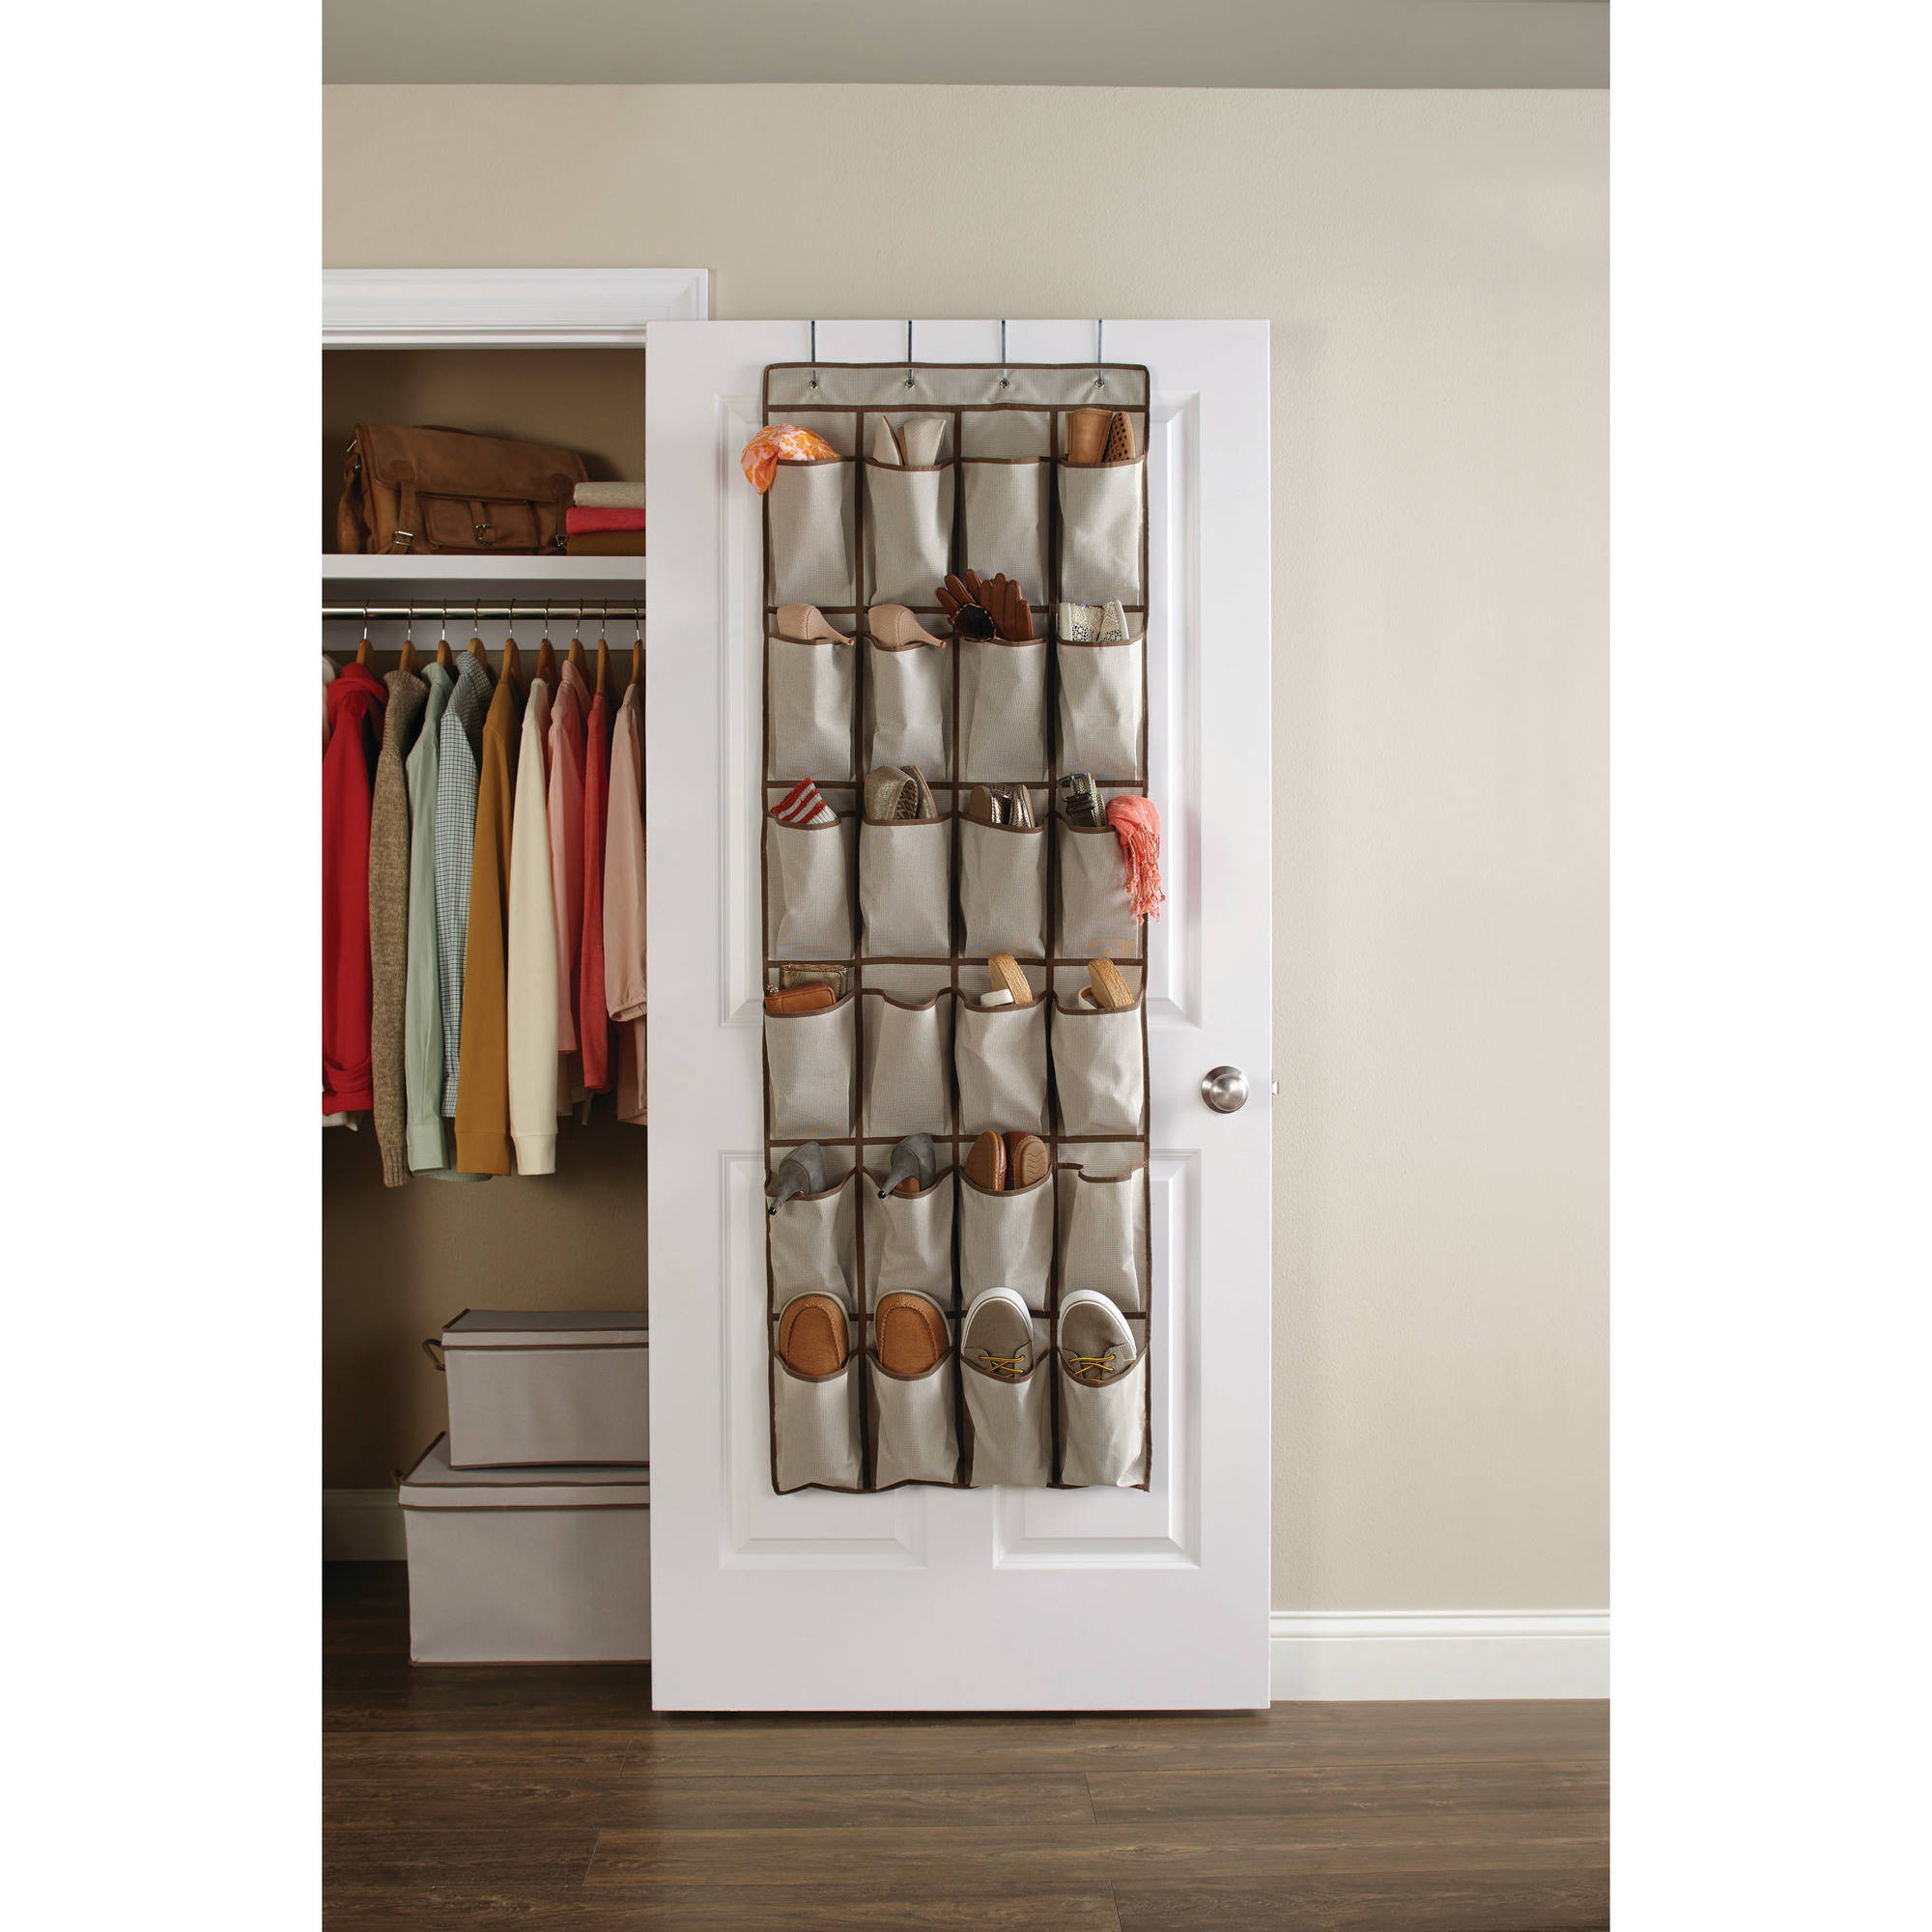 Better Homes and Gardens 24-Shelf Other-The-Door Shoe Organizer